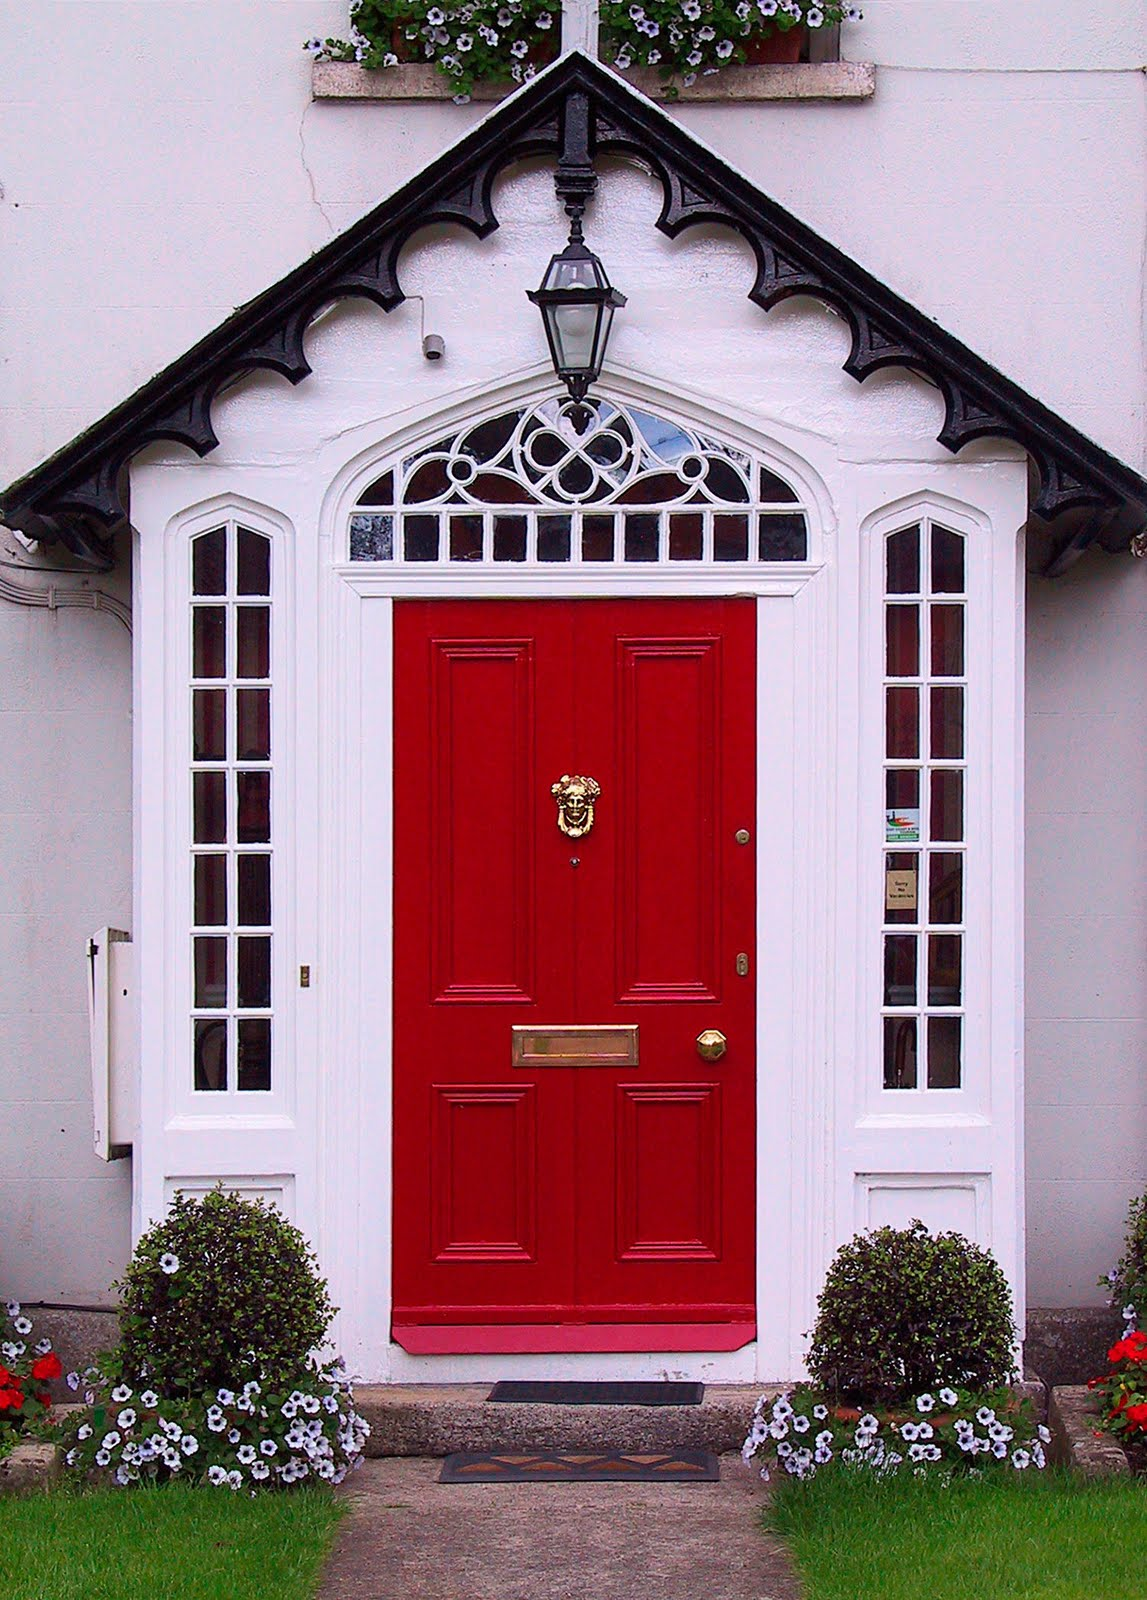 A charming house in light shade of pink with a red door